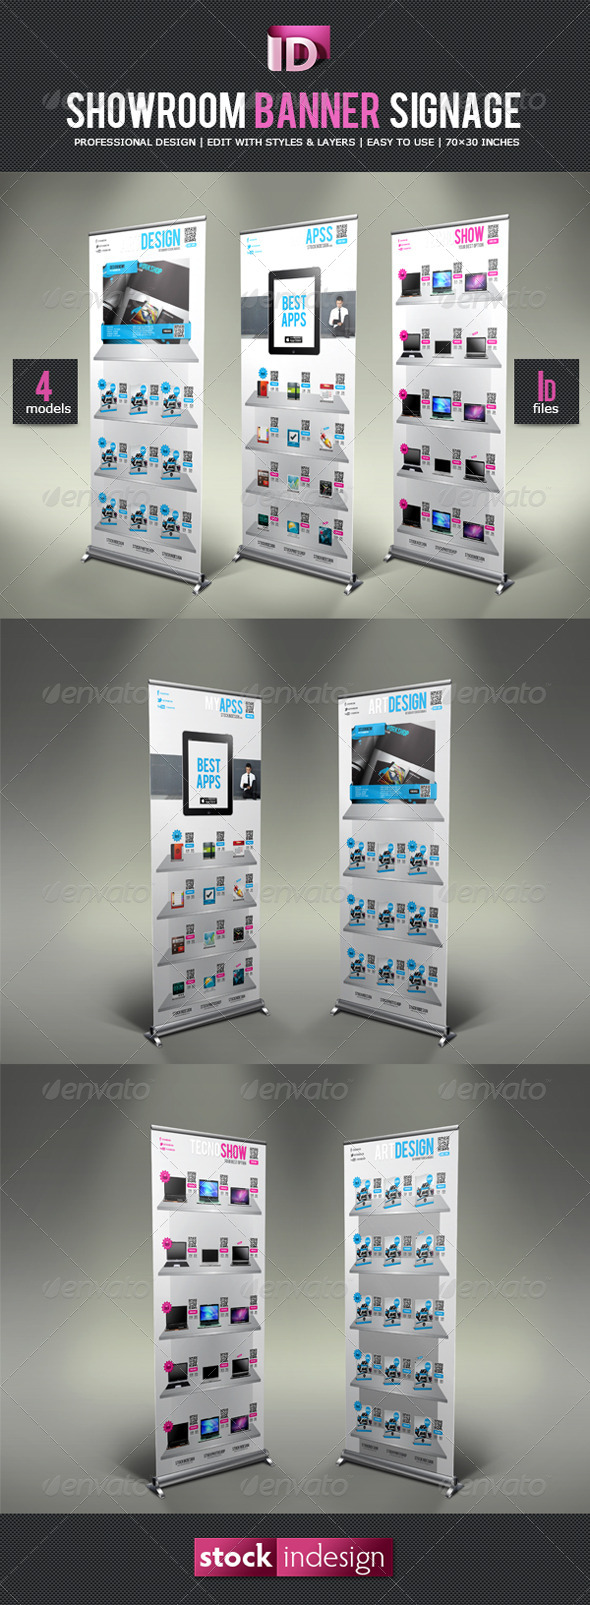 GraphicRiver ShowRoom Banner Signage 4343273